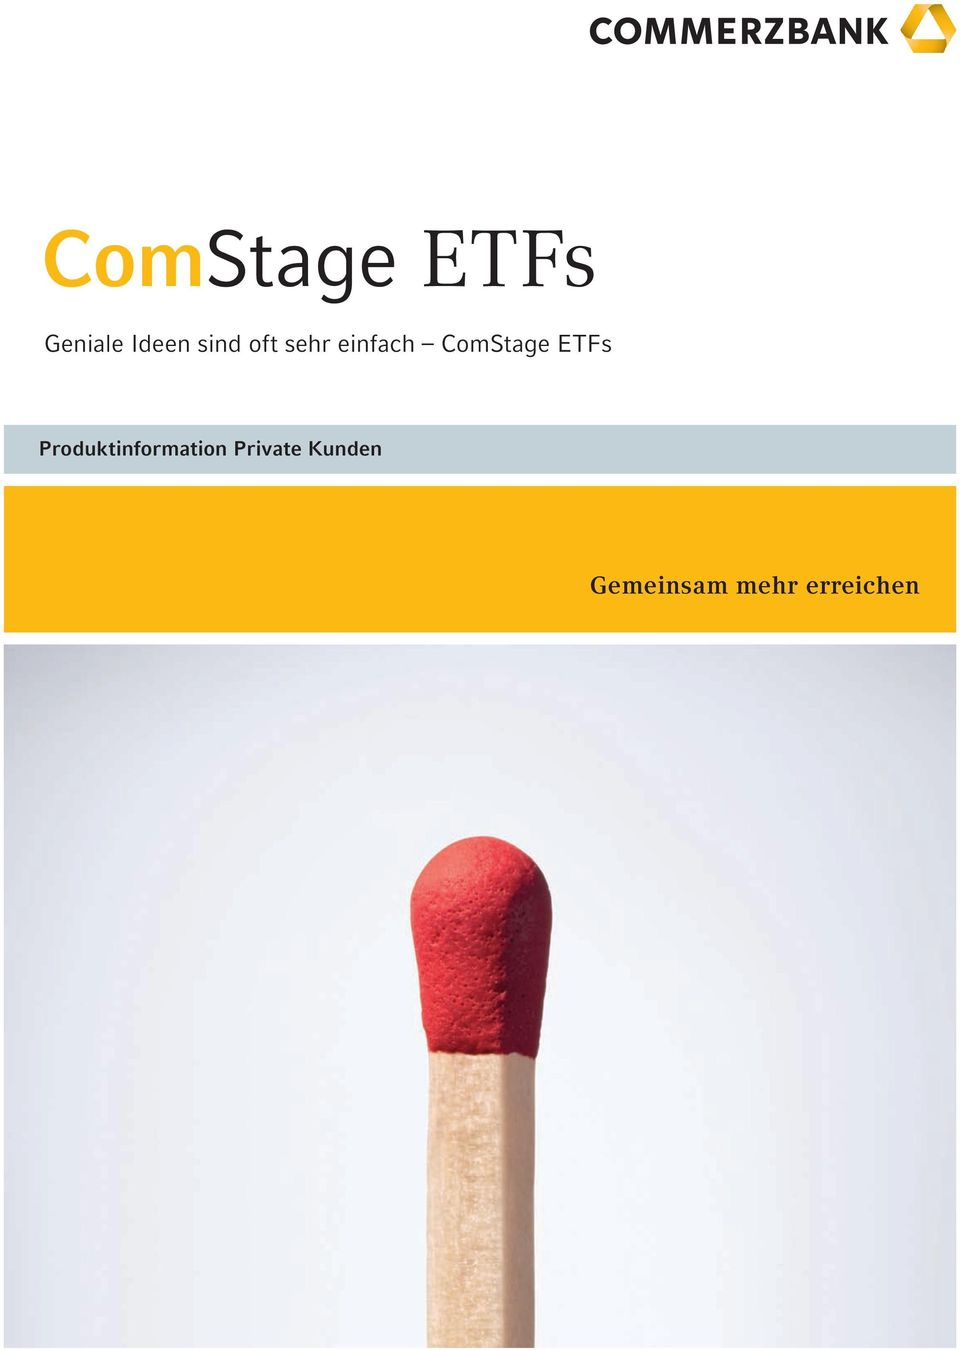 ETFs Produktinformation